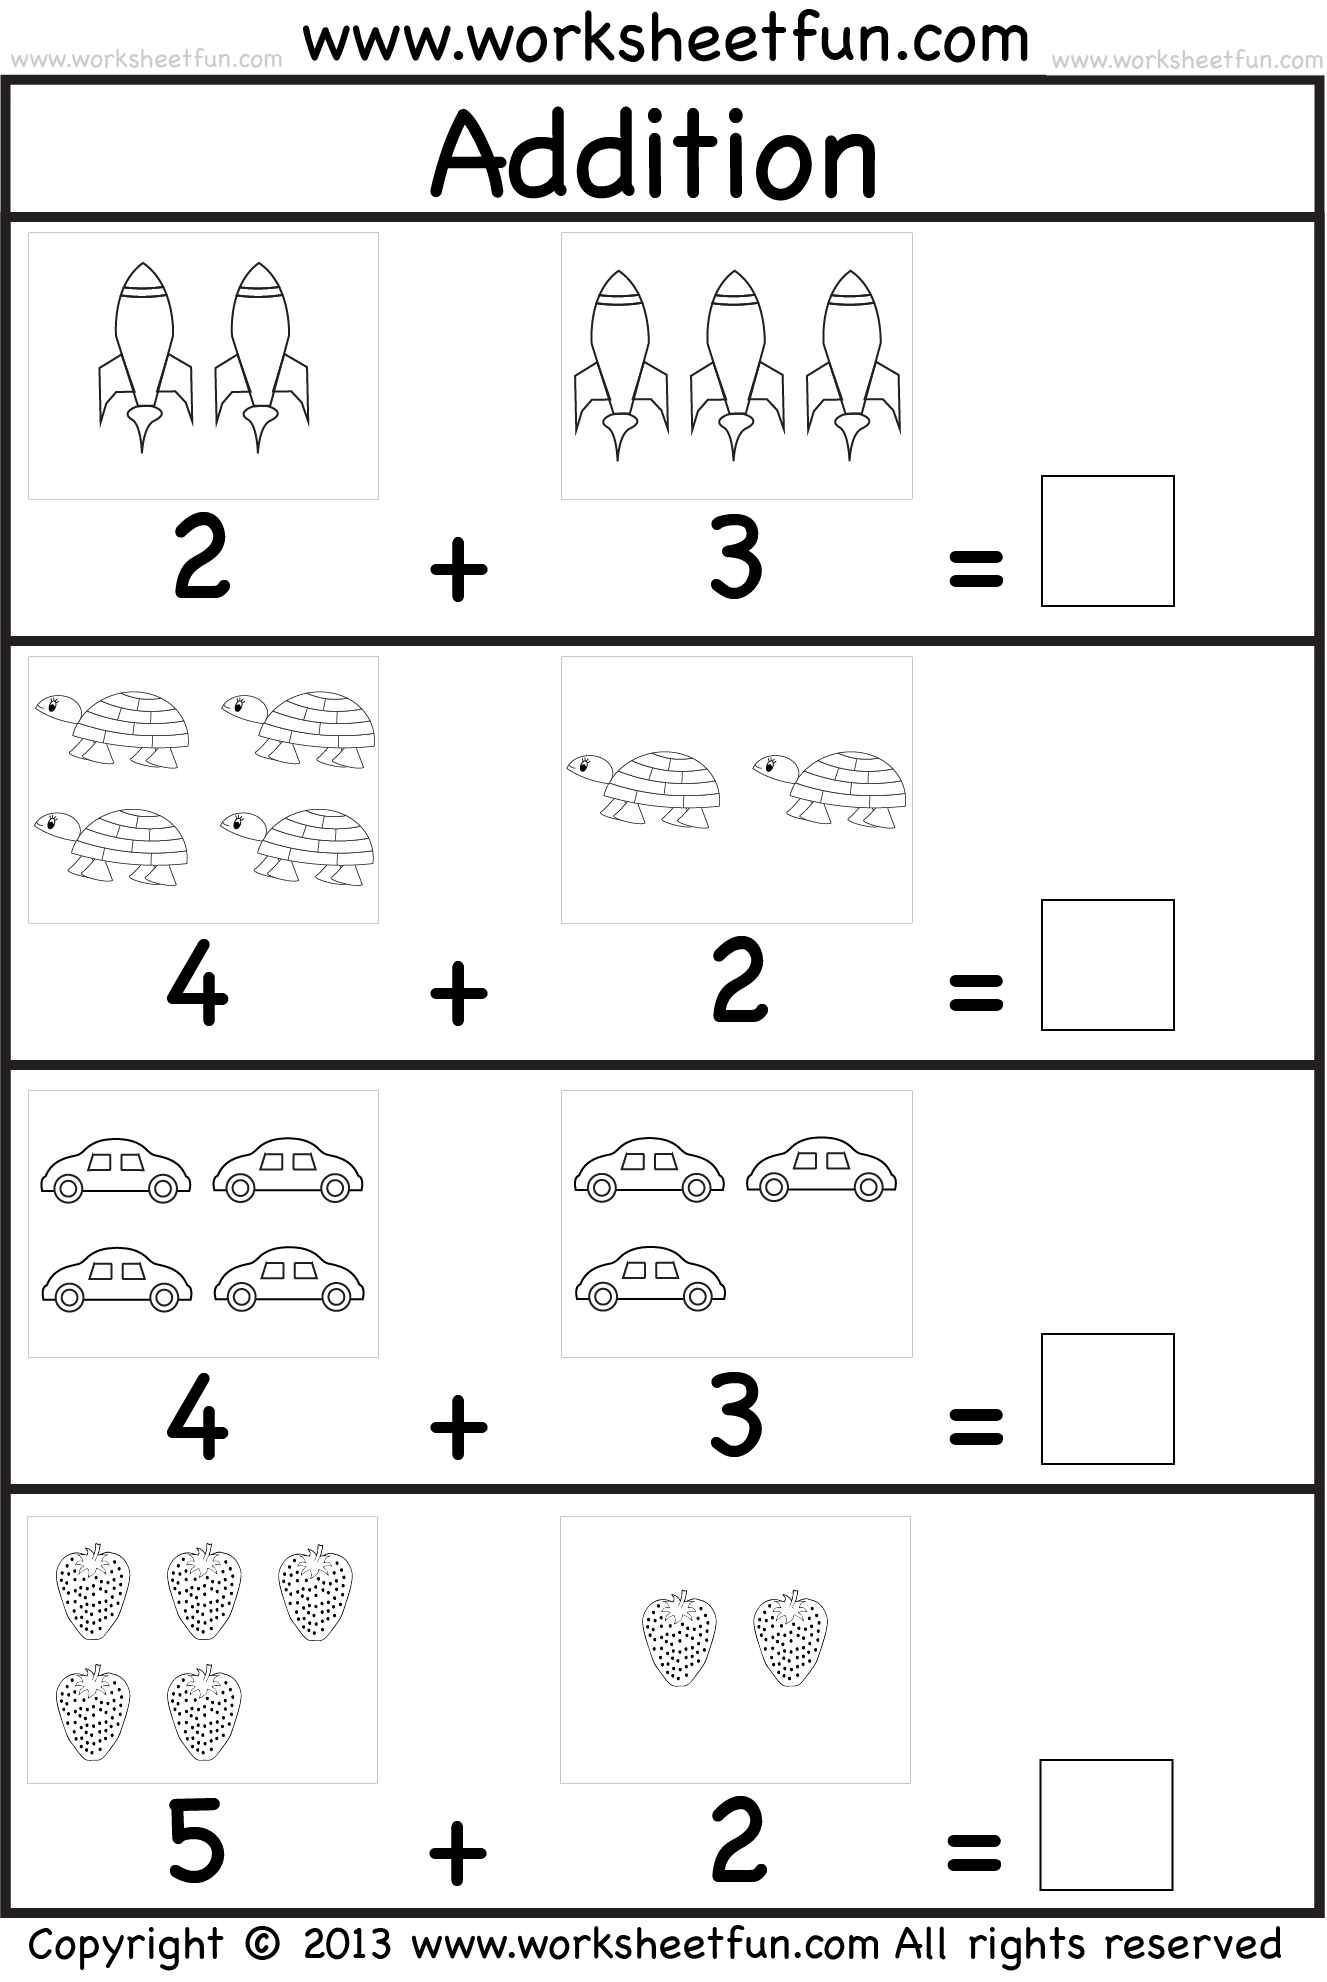 Worksheets Free Printable Simple Addition Worksheets addition worksheet this site has great free worksheets for everything from abcs to